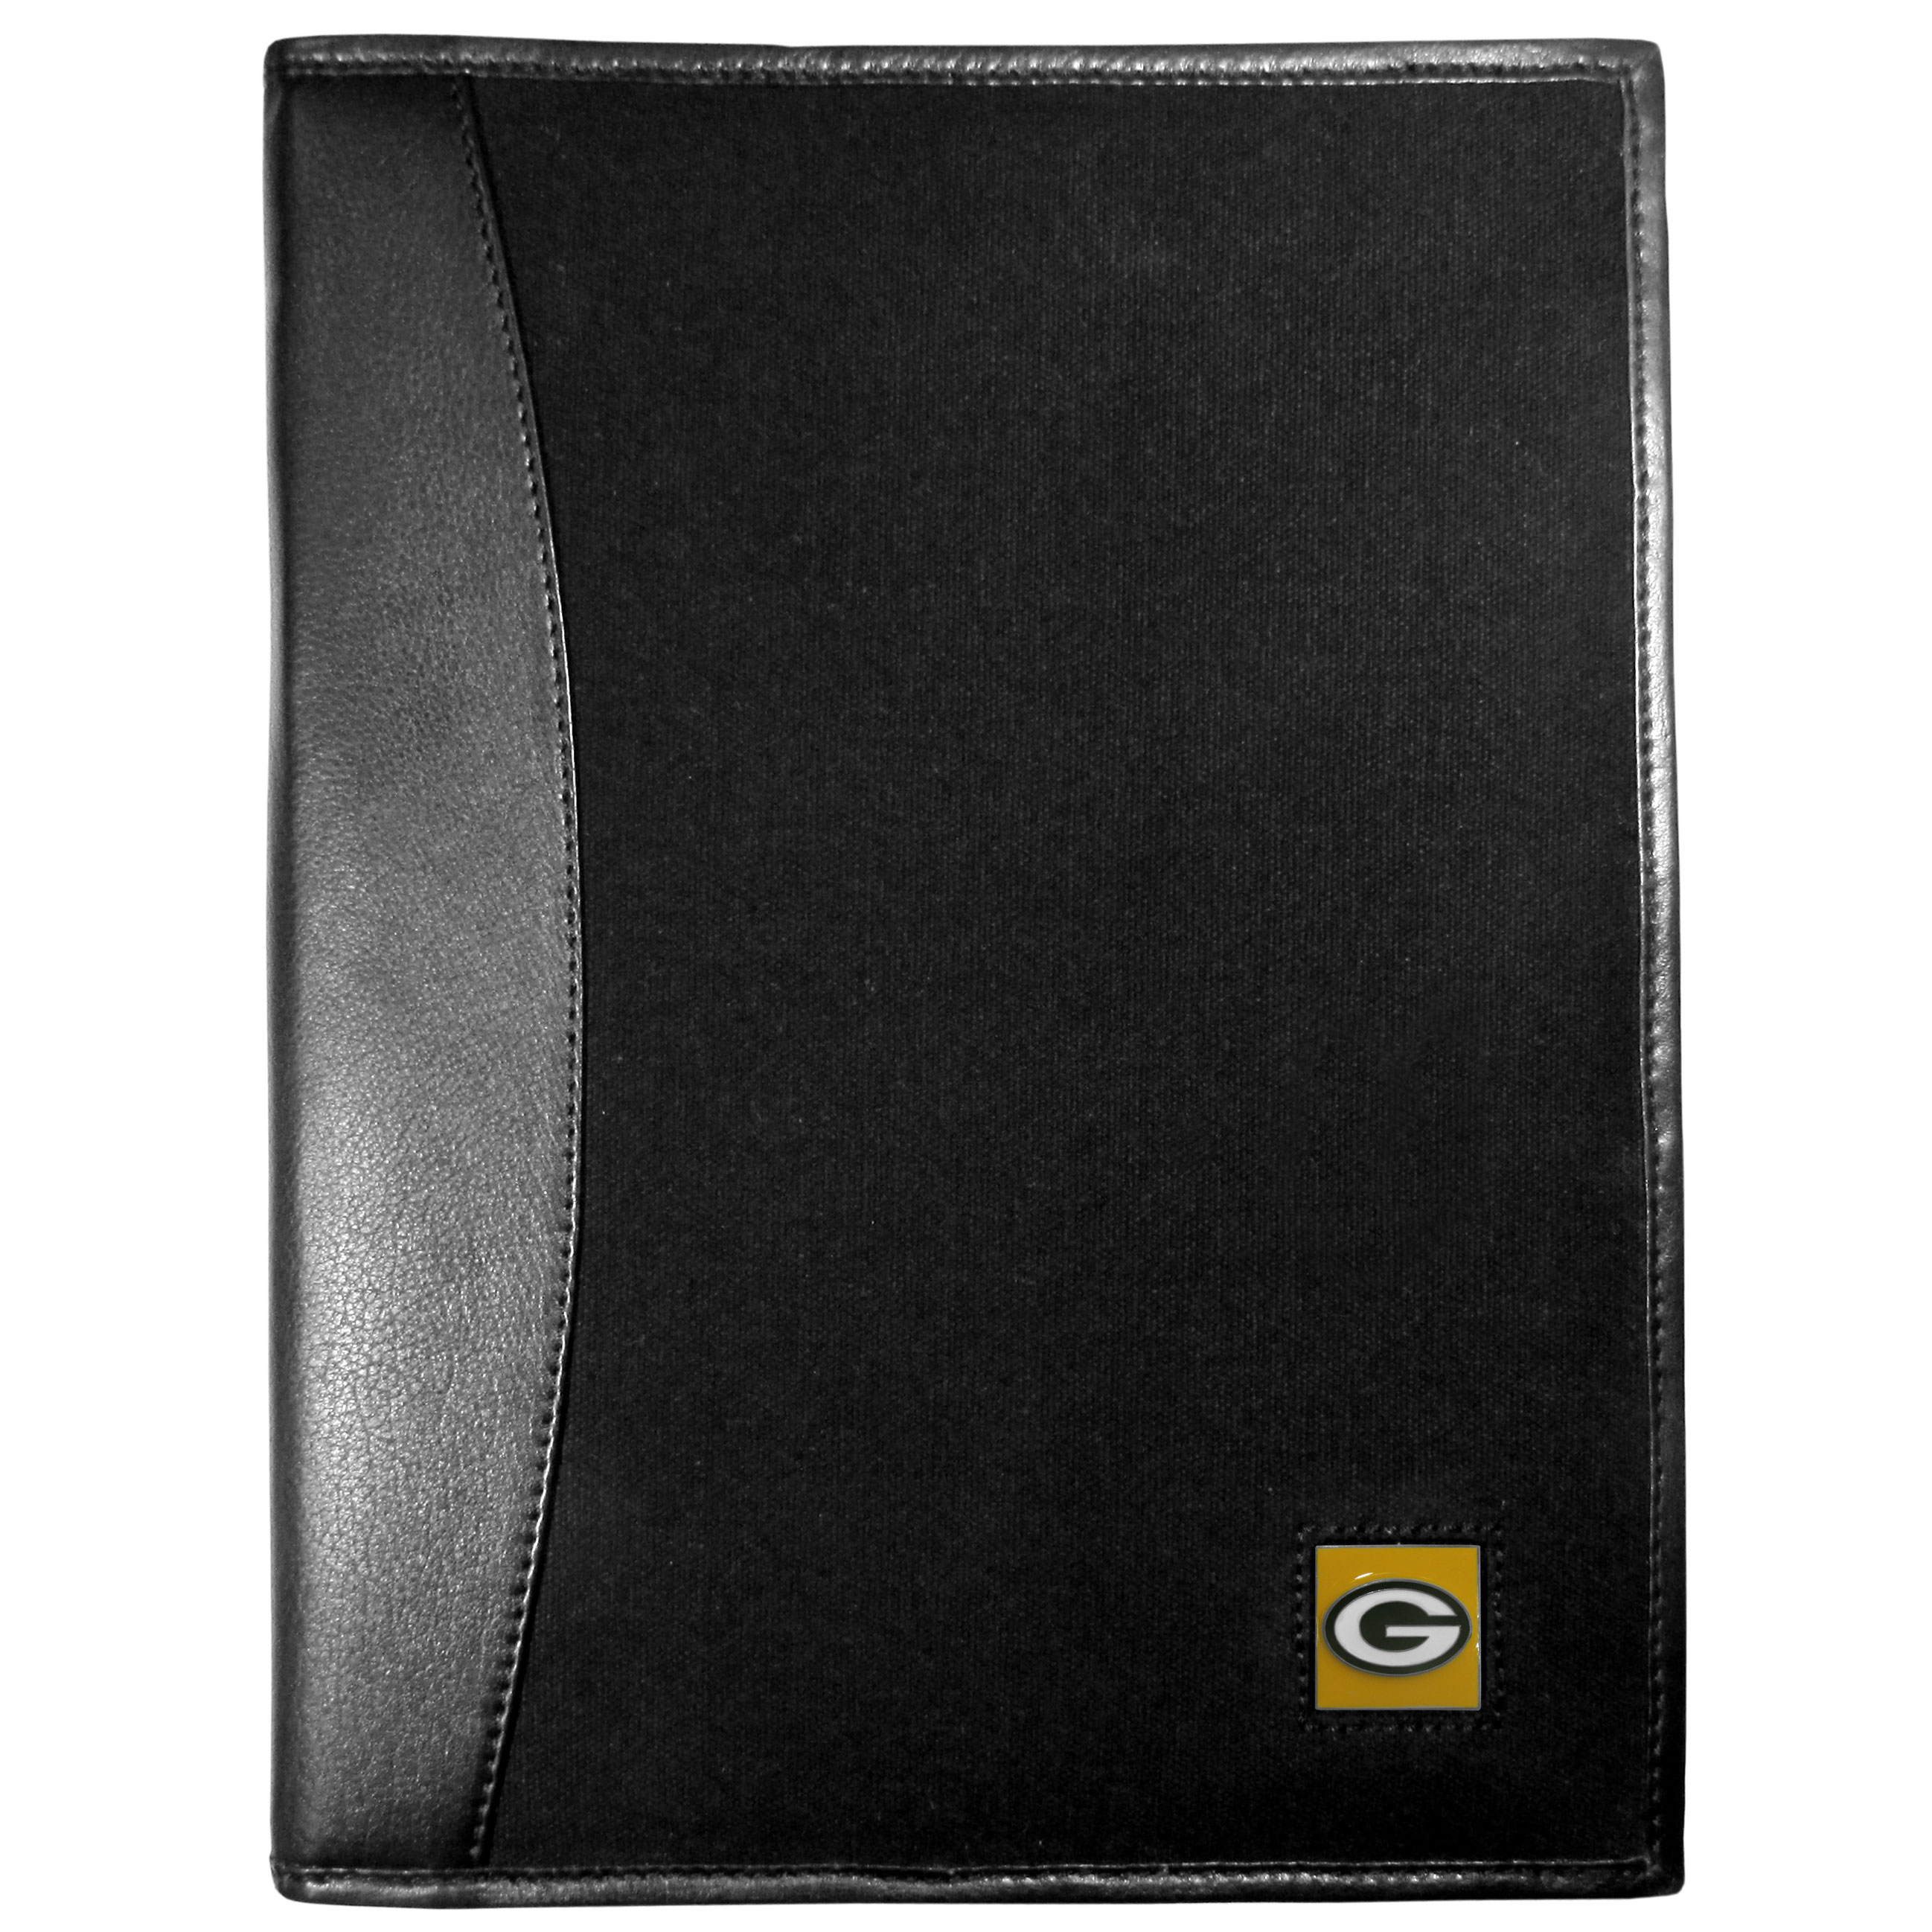 Green Bay Packers Leather and Canvas Padfolio - Our leather and canvas padfolio perfectly blends form and function. The attractive portfolio is bound in fine grain leather with an attractive canvas finish and the interior is a soft nylon. This high quality business accessory also features a fully cast metal Green Bay Packers emblem that is subtly set in the corner of the organizer. It is packed with features like 6 card slots for badges, business cards, hotel keys or credit cards and ID with a large pocket for loose papers and a writing tablet slot making it a must-have for the professional on the go.